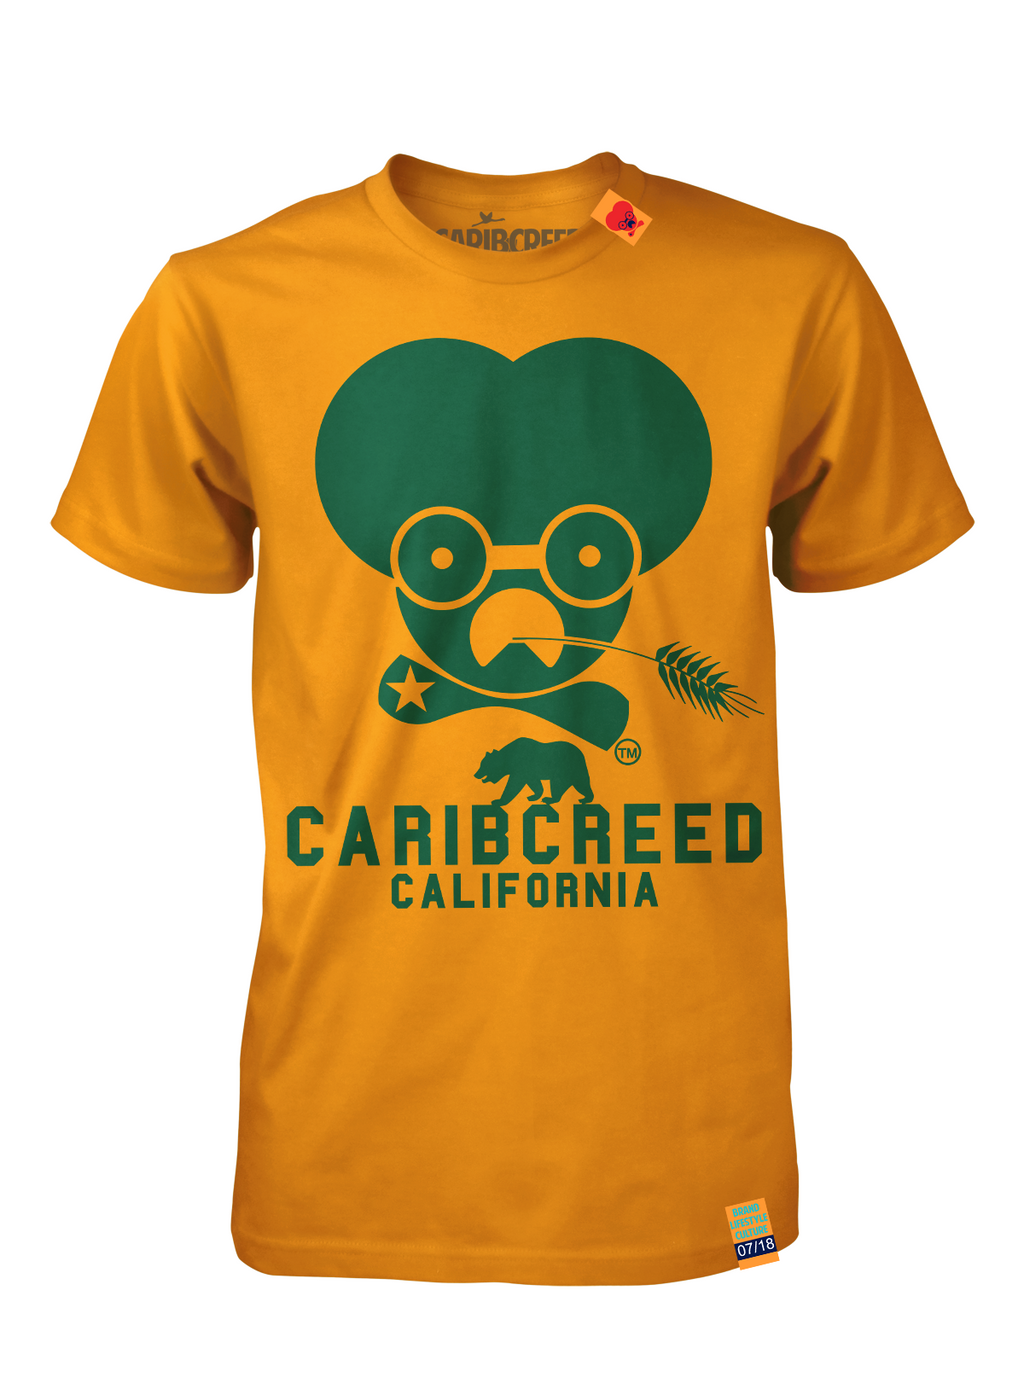 Original Classic | VERMONT - CaribCreed (California) Clothing